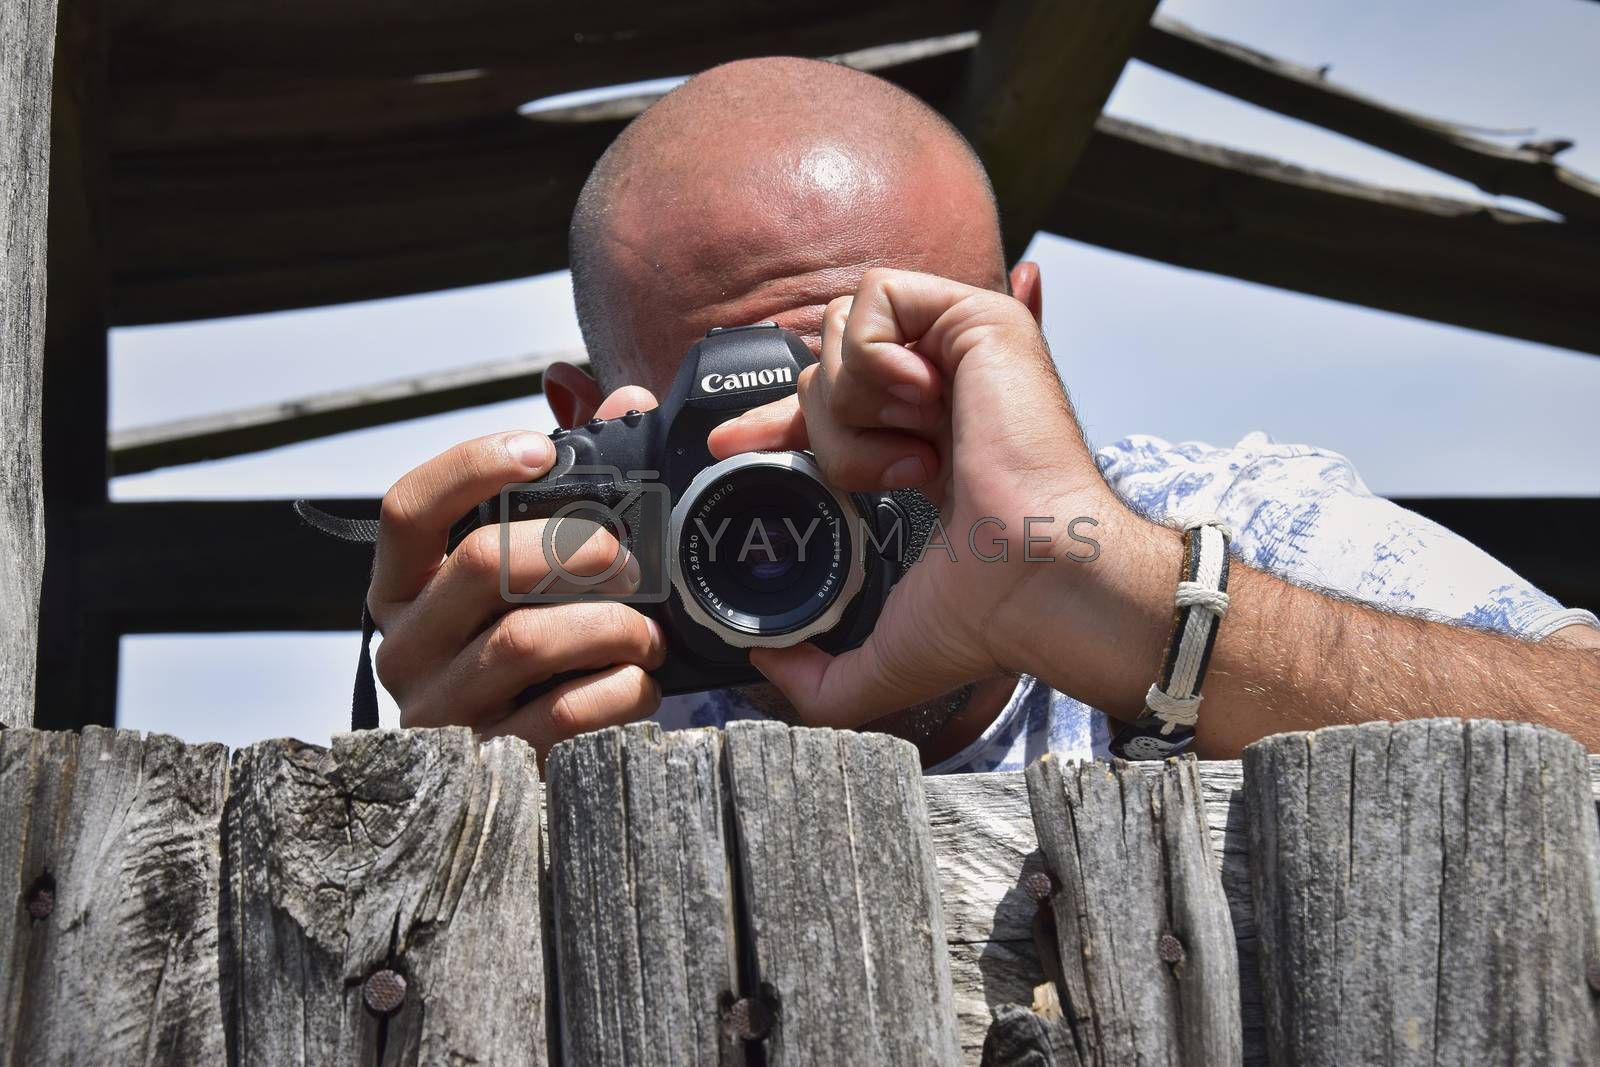 SA STIDDIOSA ITALY 24 JUNE 2019: Photographer in nature in action during a sunny day